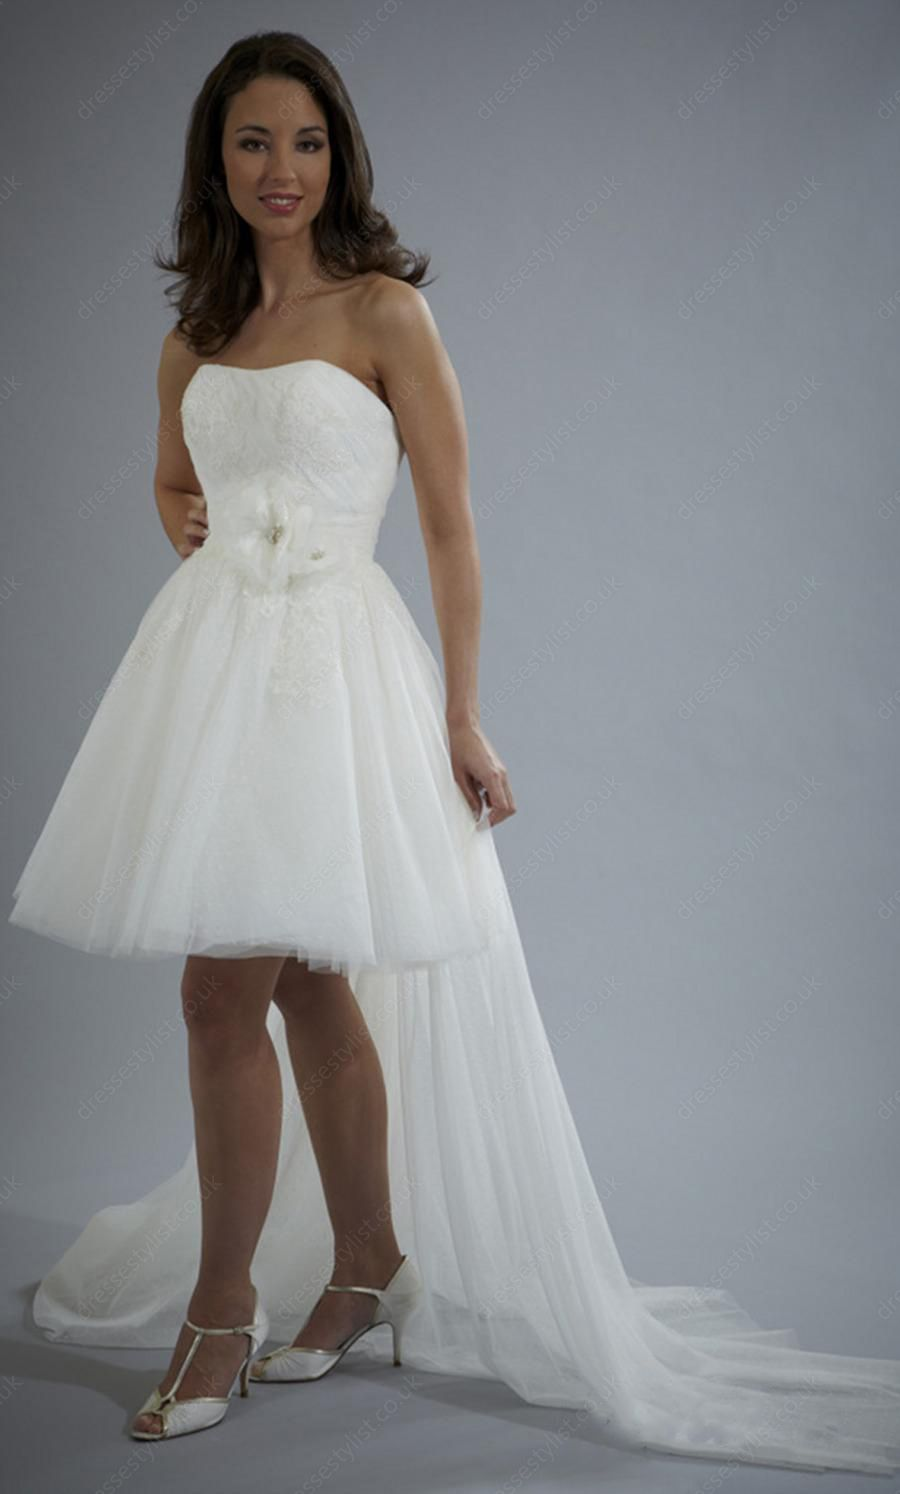 A-line Strapless Tulle Short/Mini White Flowers Wedding Dress Shop ...